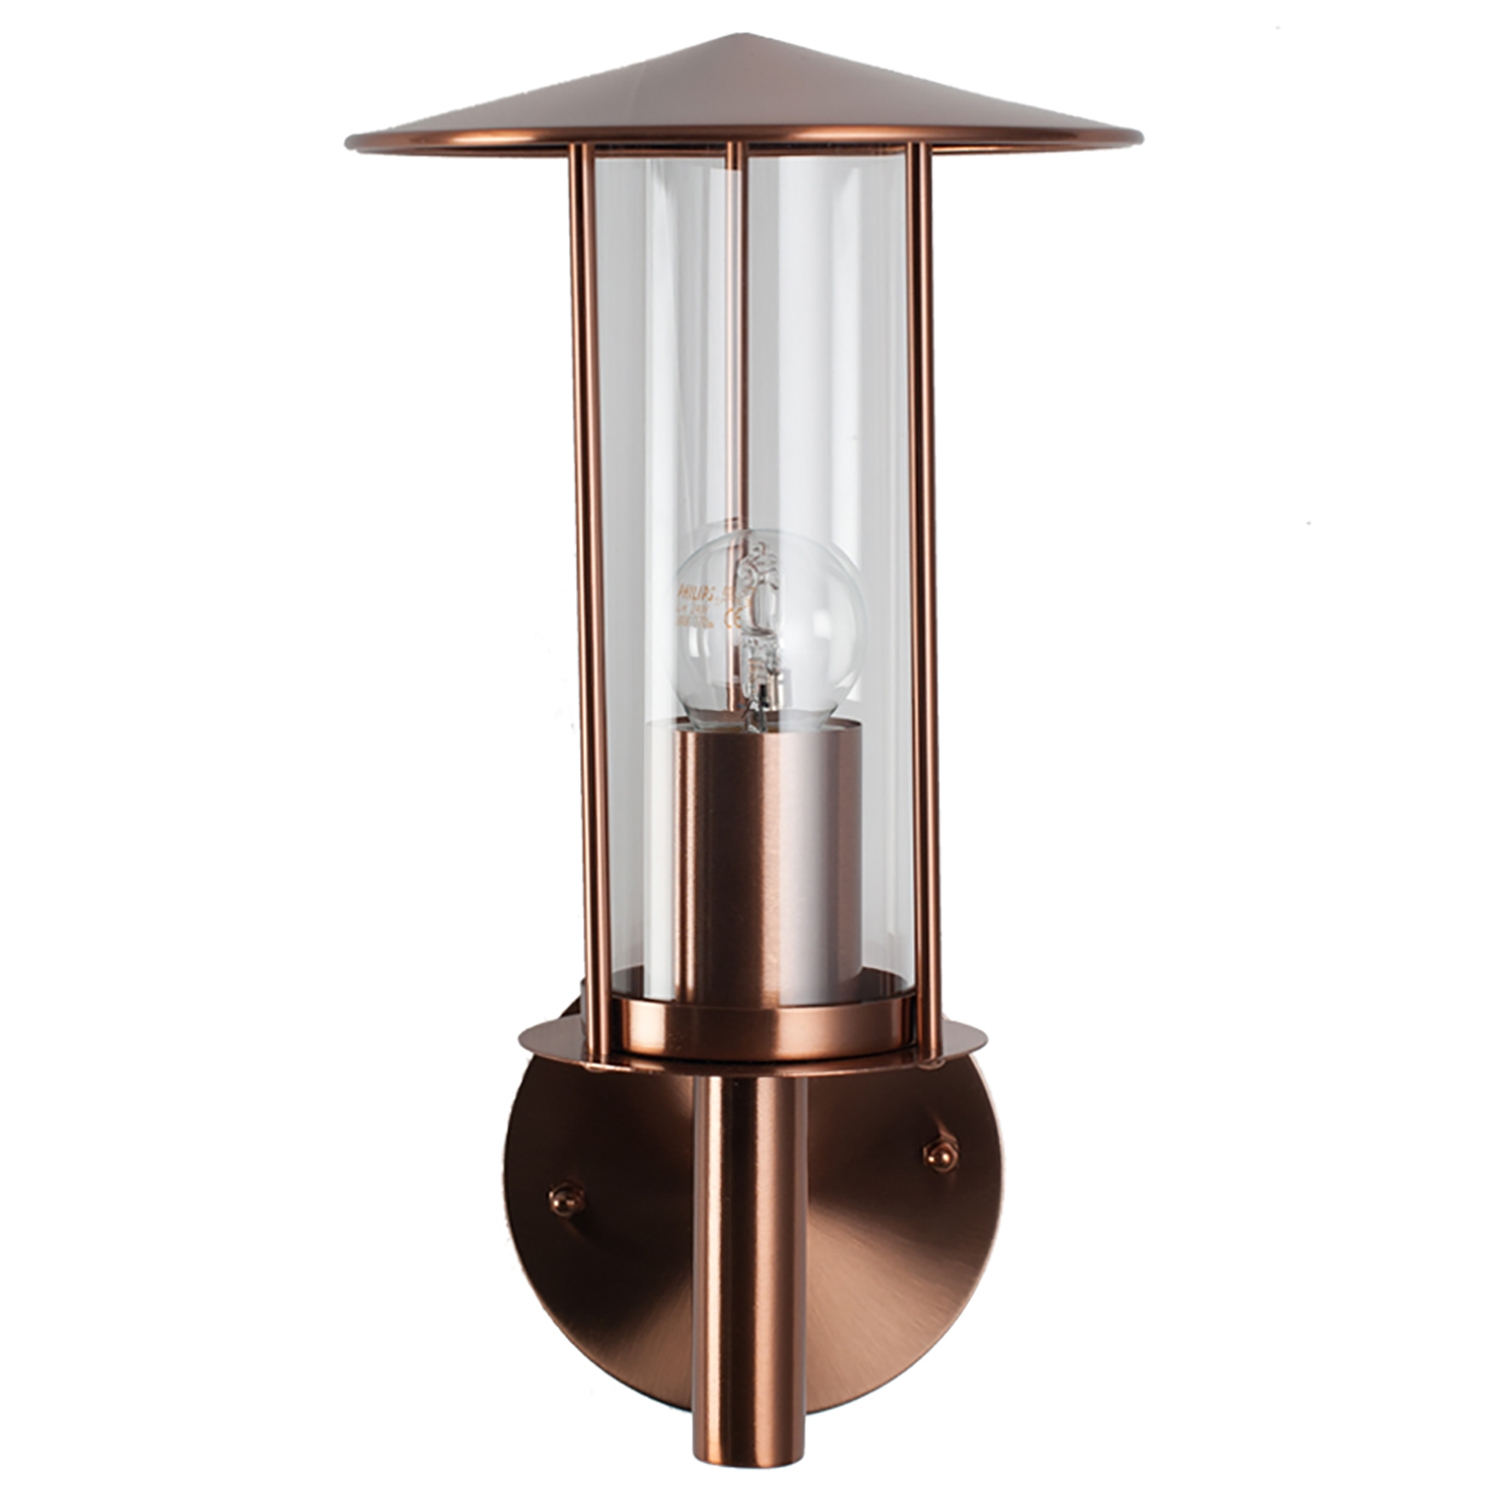 Image of Casa Outdoor Chimney Wall Light, Copper